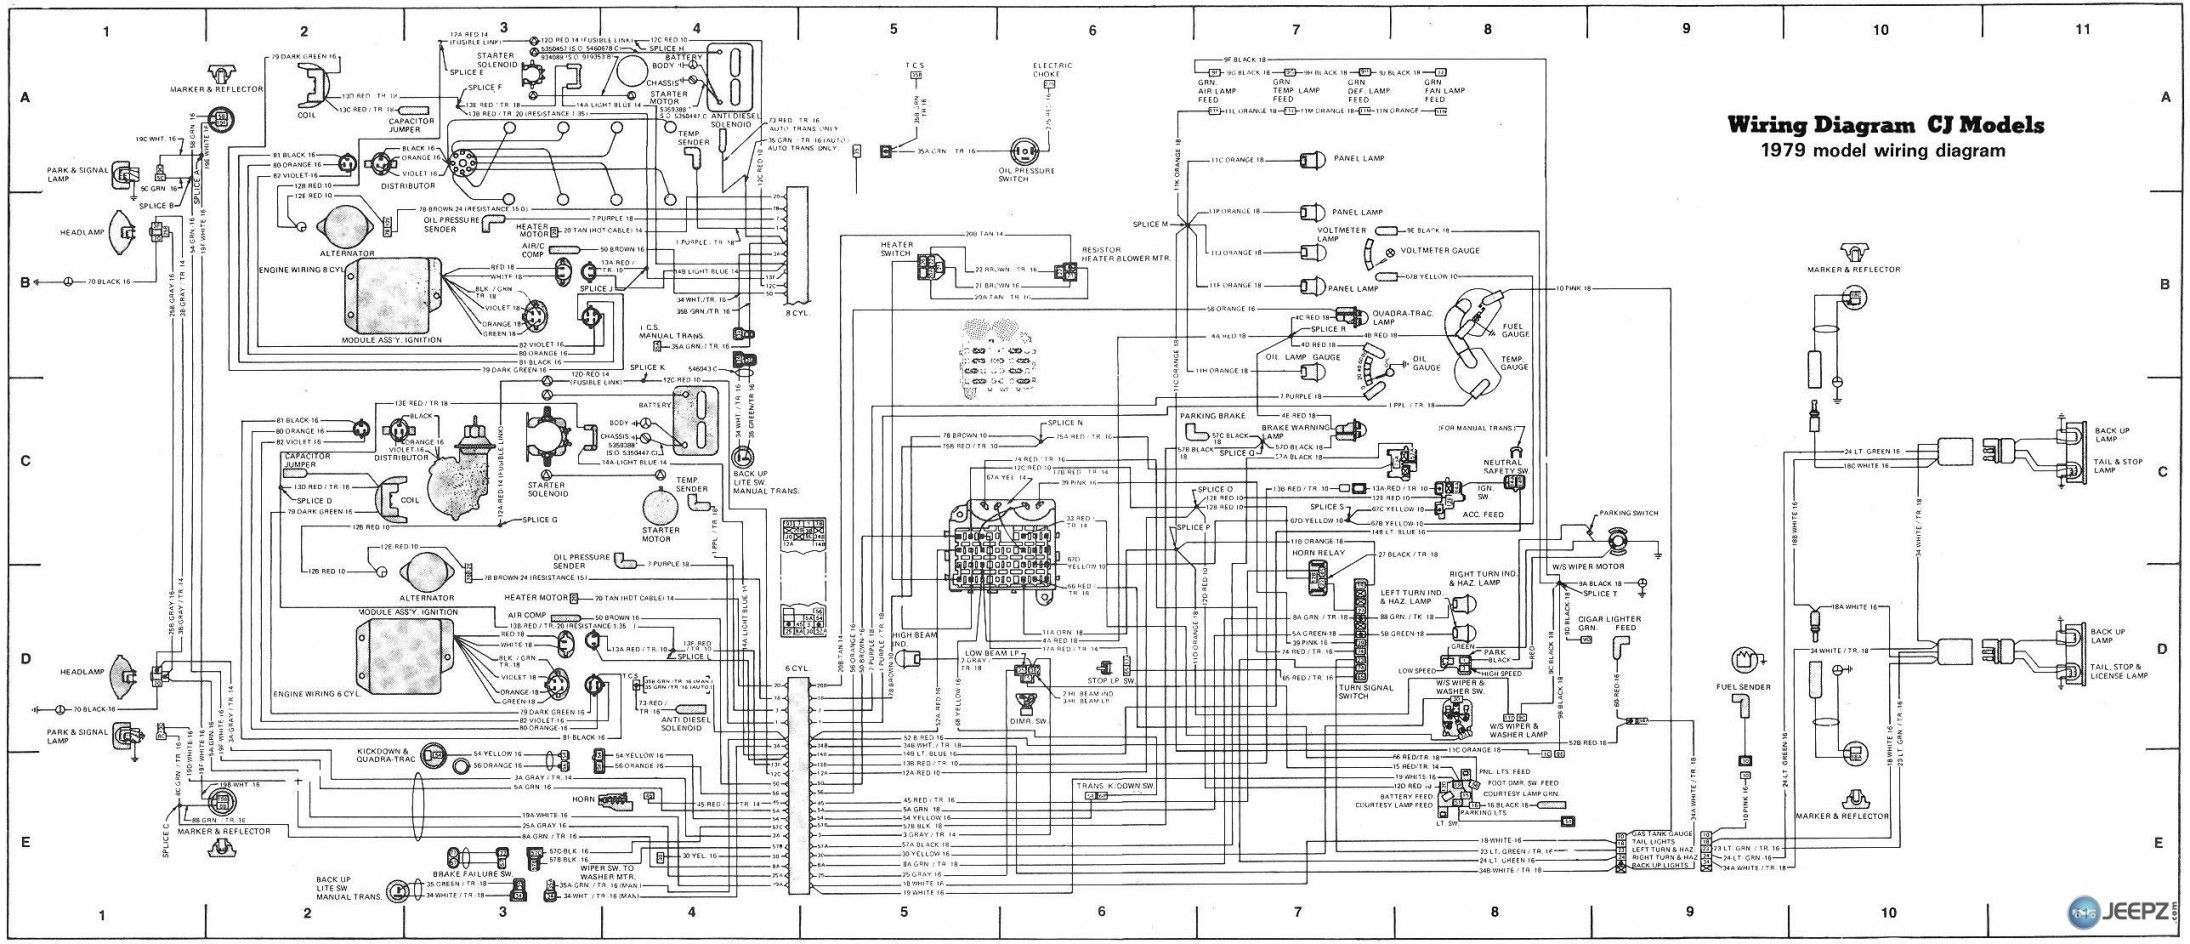 Wiring Diagram For Jeep Reveolution Of Wrangler Door Lock Image Best 1979 Cj7 Rh Pinterest Com Commander 2006 Instrument